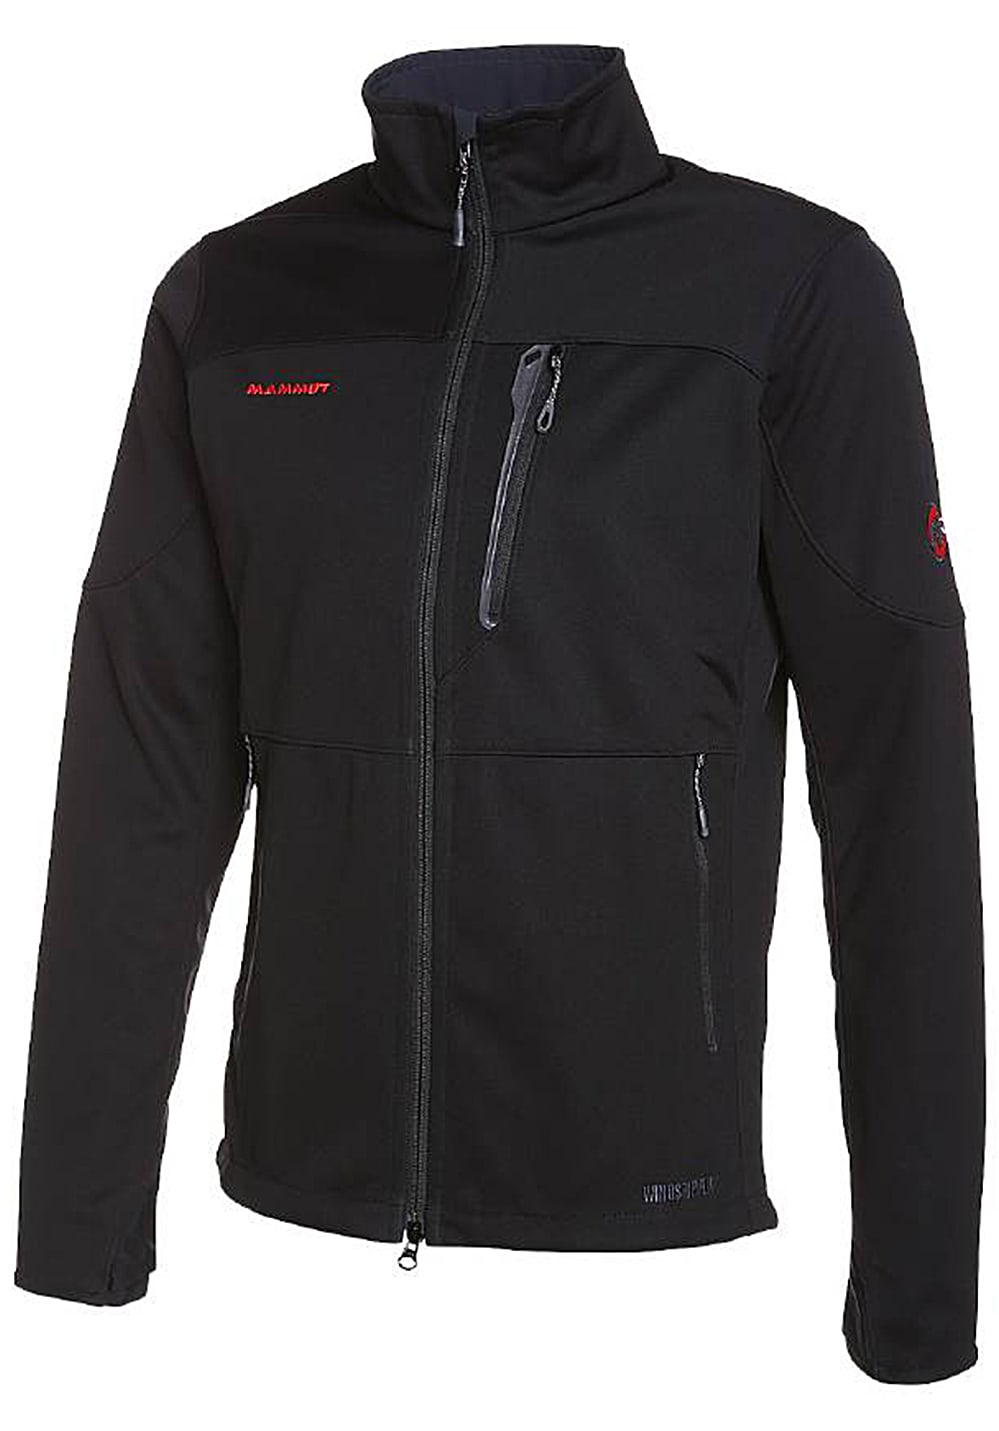 mammut ultimate jacke f r herren schwarz planet sports. Black Bedroom Furniture Sets. Home Design Ideas